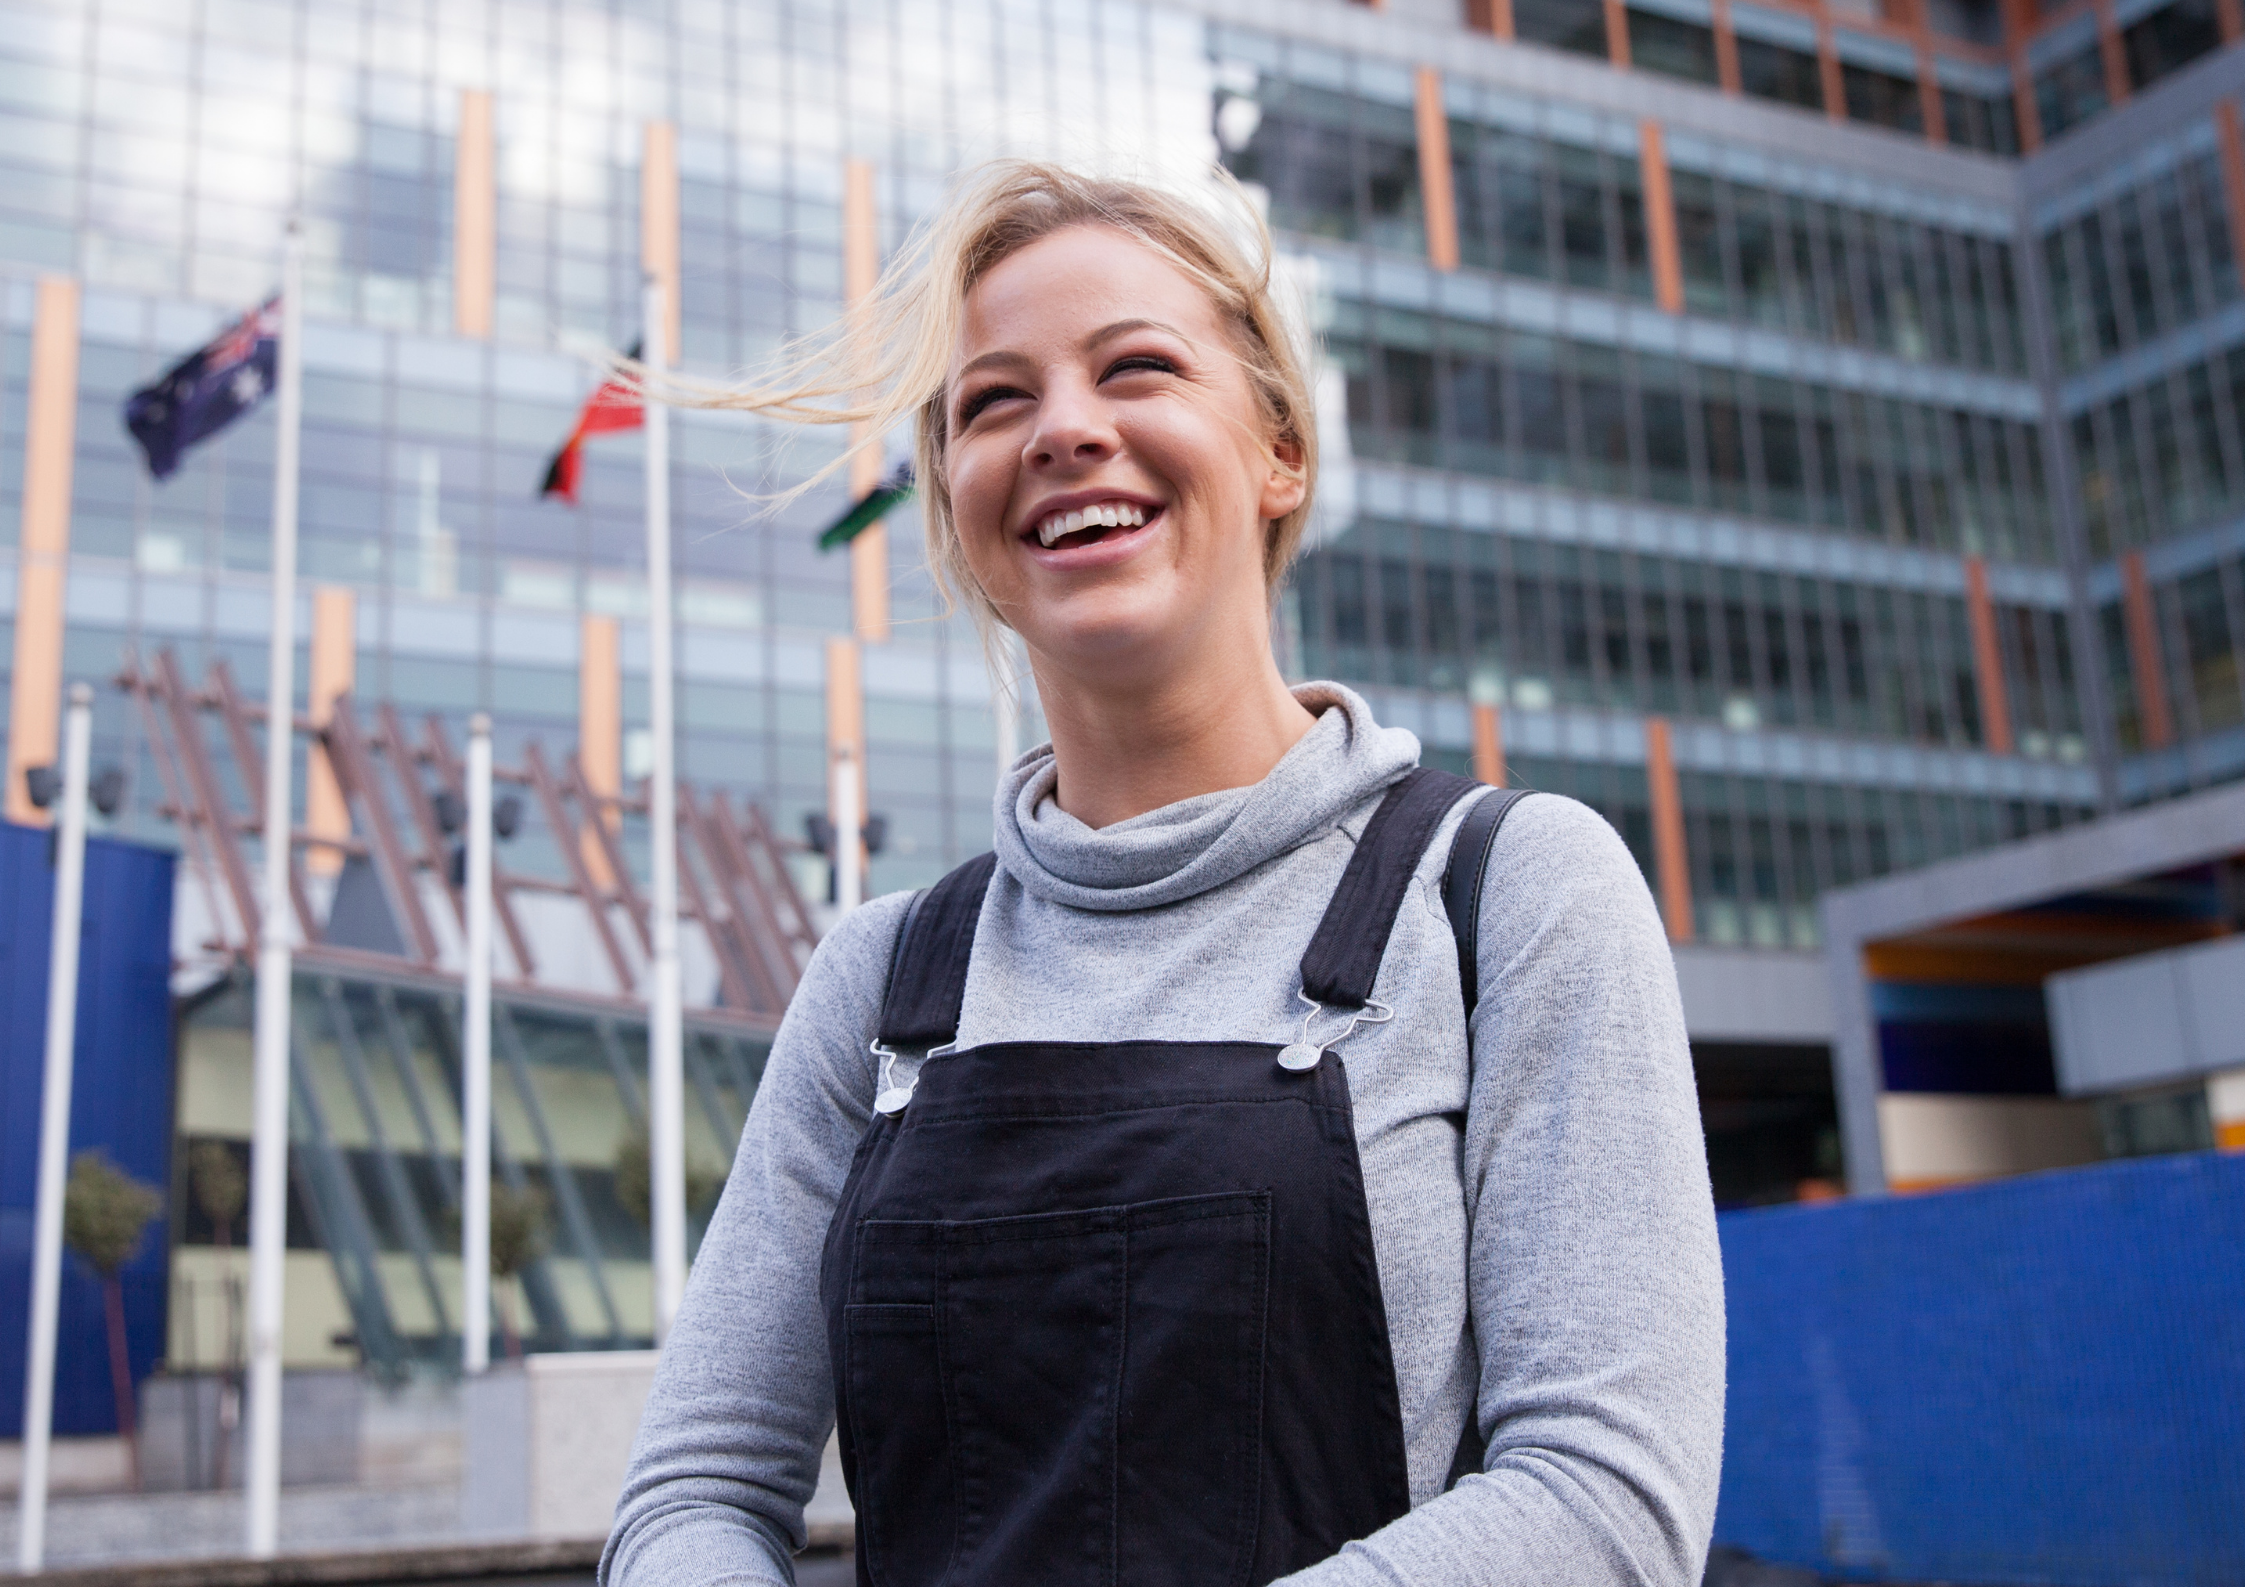 young woman smiling in front of a shiny office building